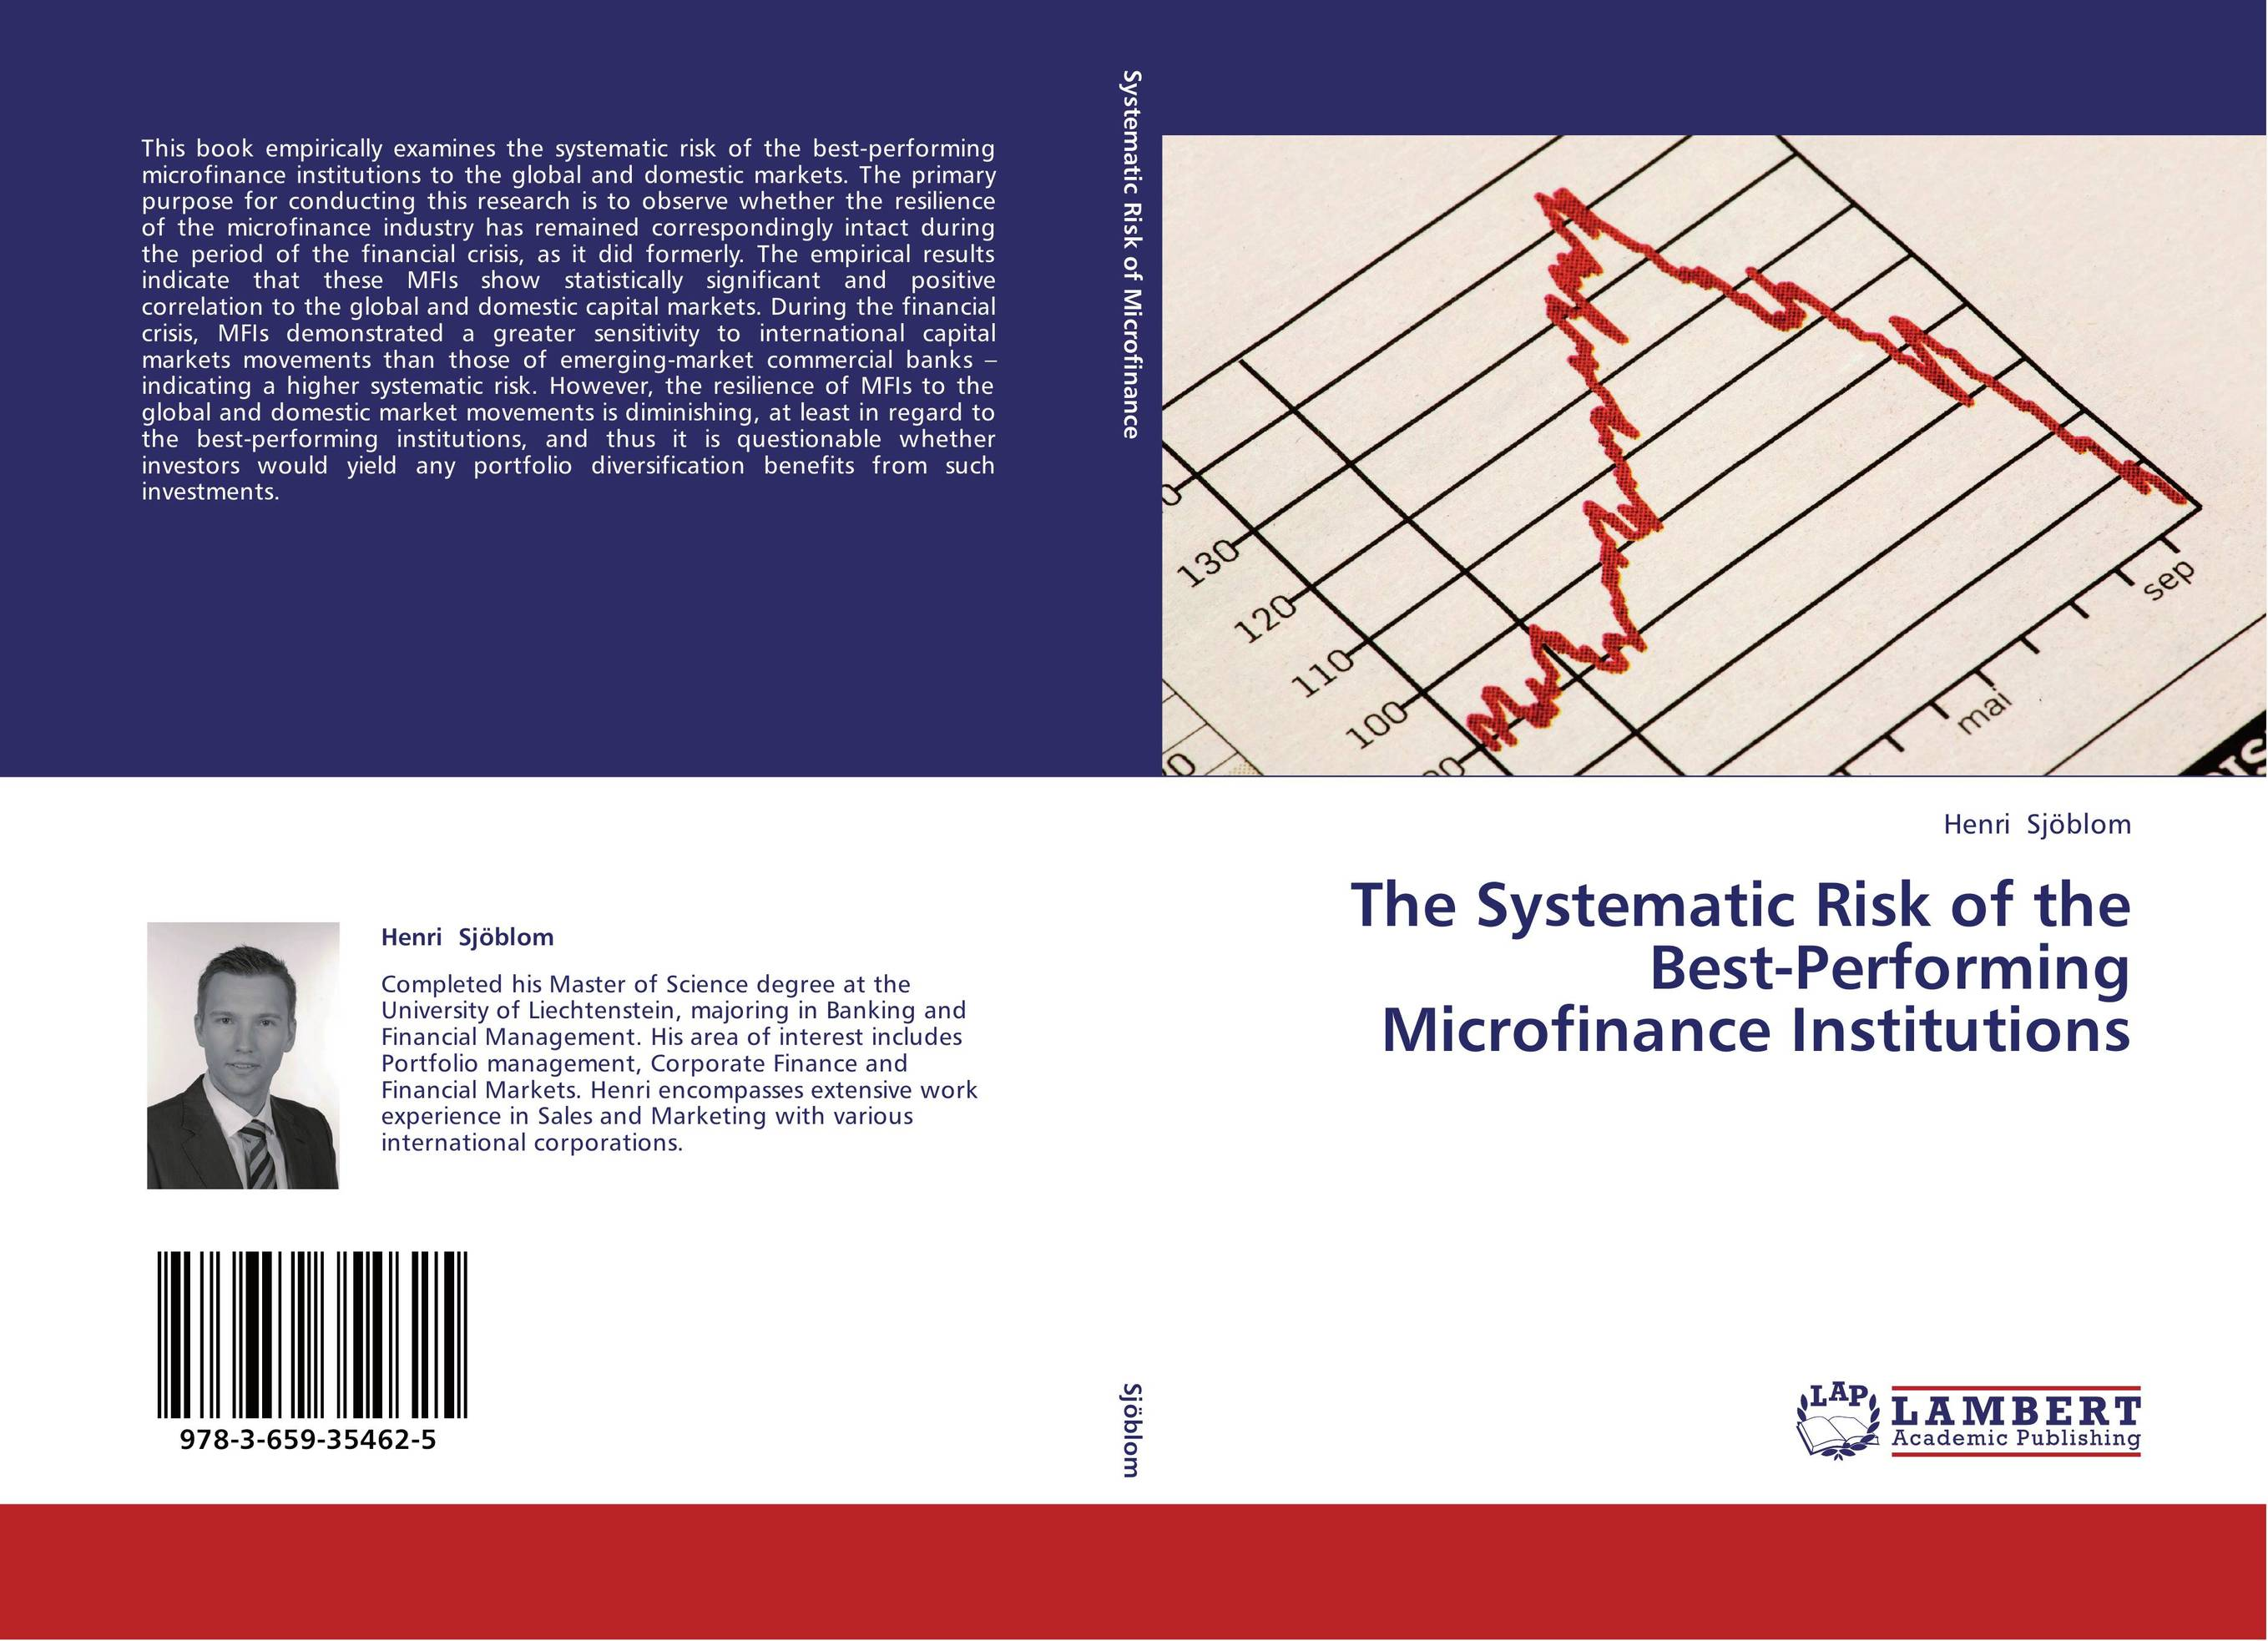 a study on bank failures systematic risk and consolidation The chapter provides a comprehensive analysis of systemic risk in banking, as the primary ingredient in understanding financial crises that cause severe negative effects for the real sector.